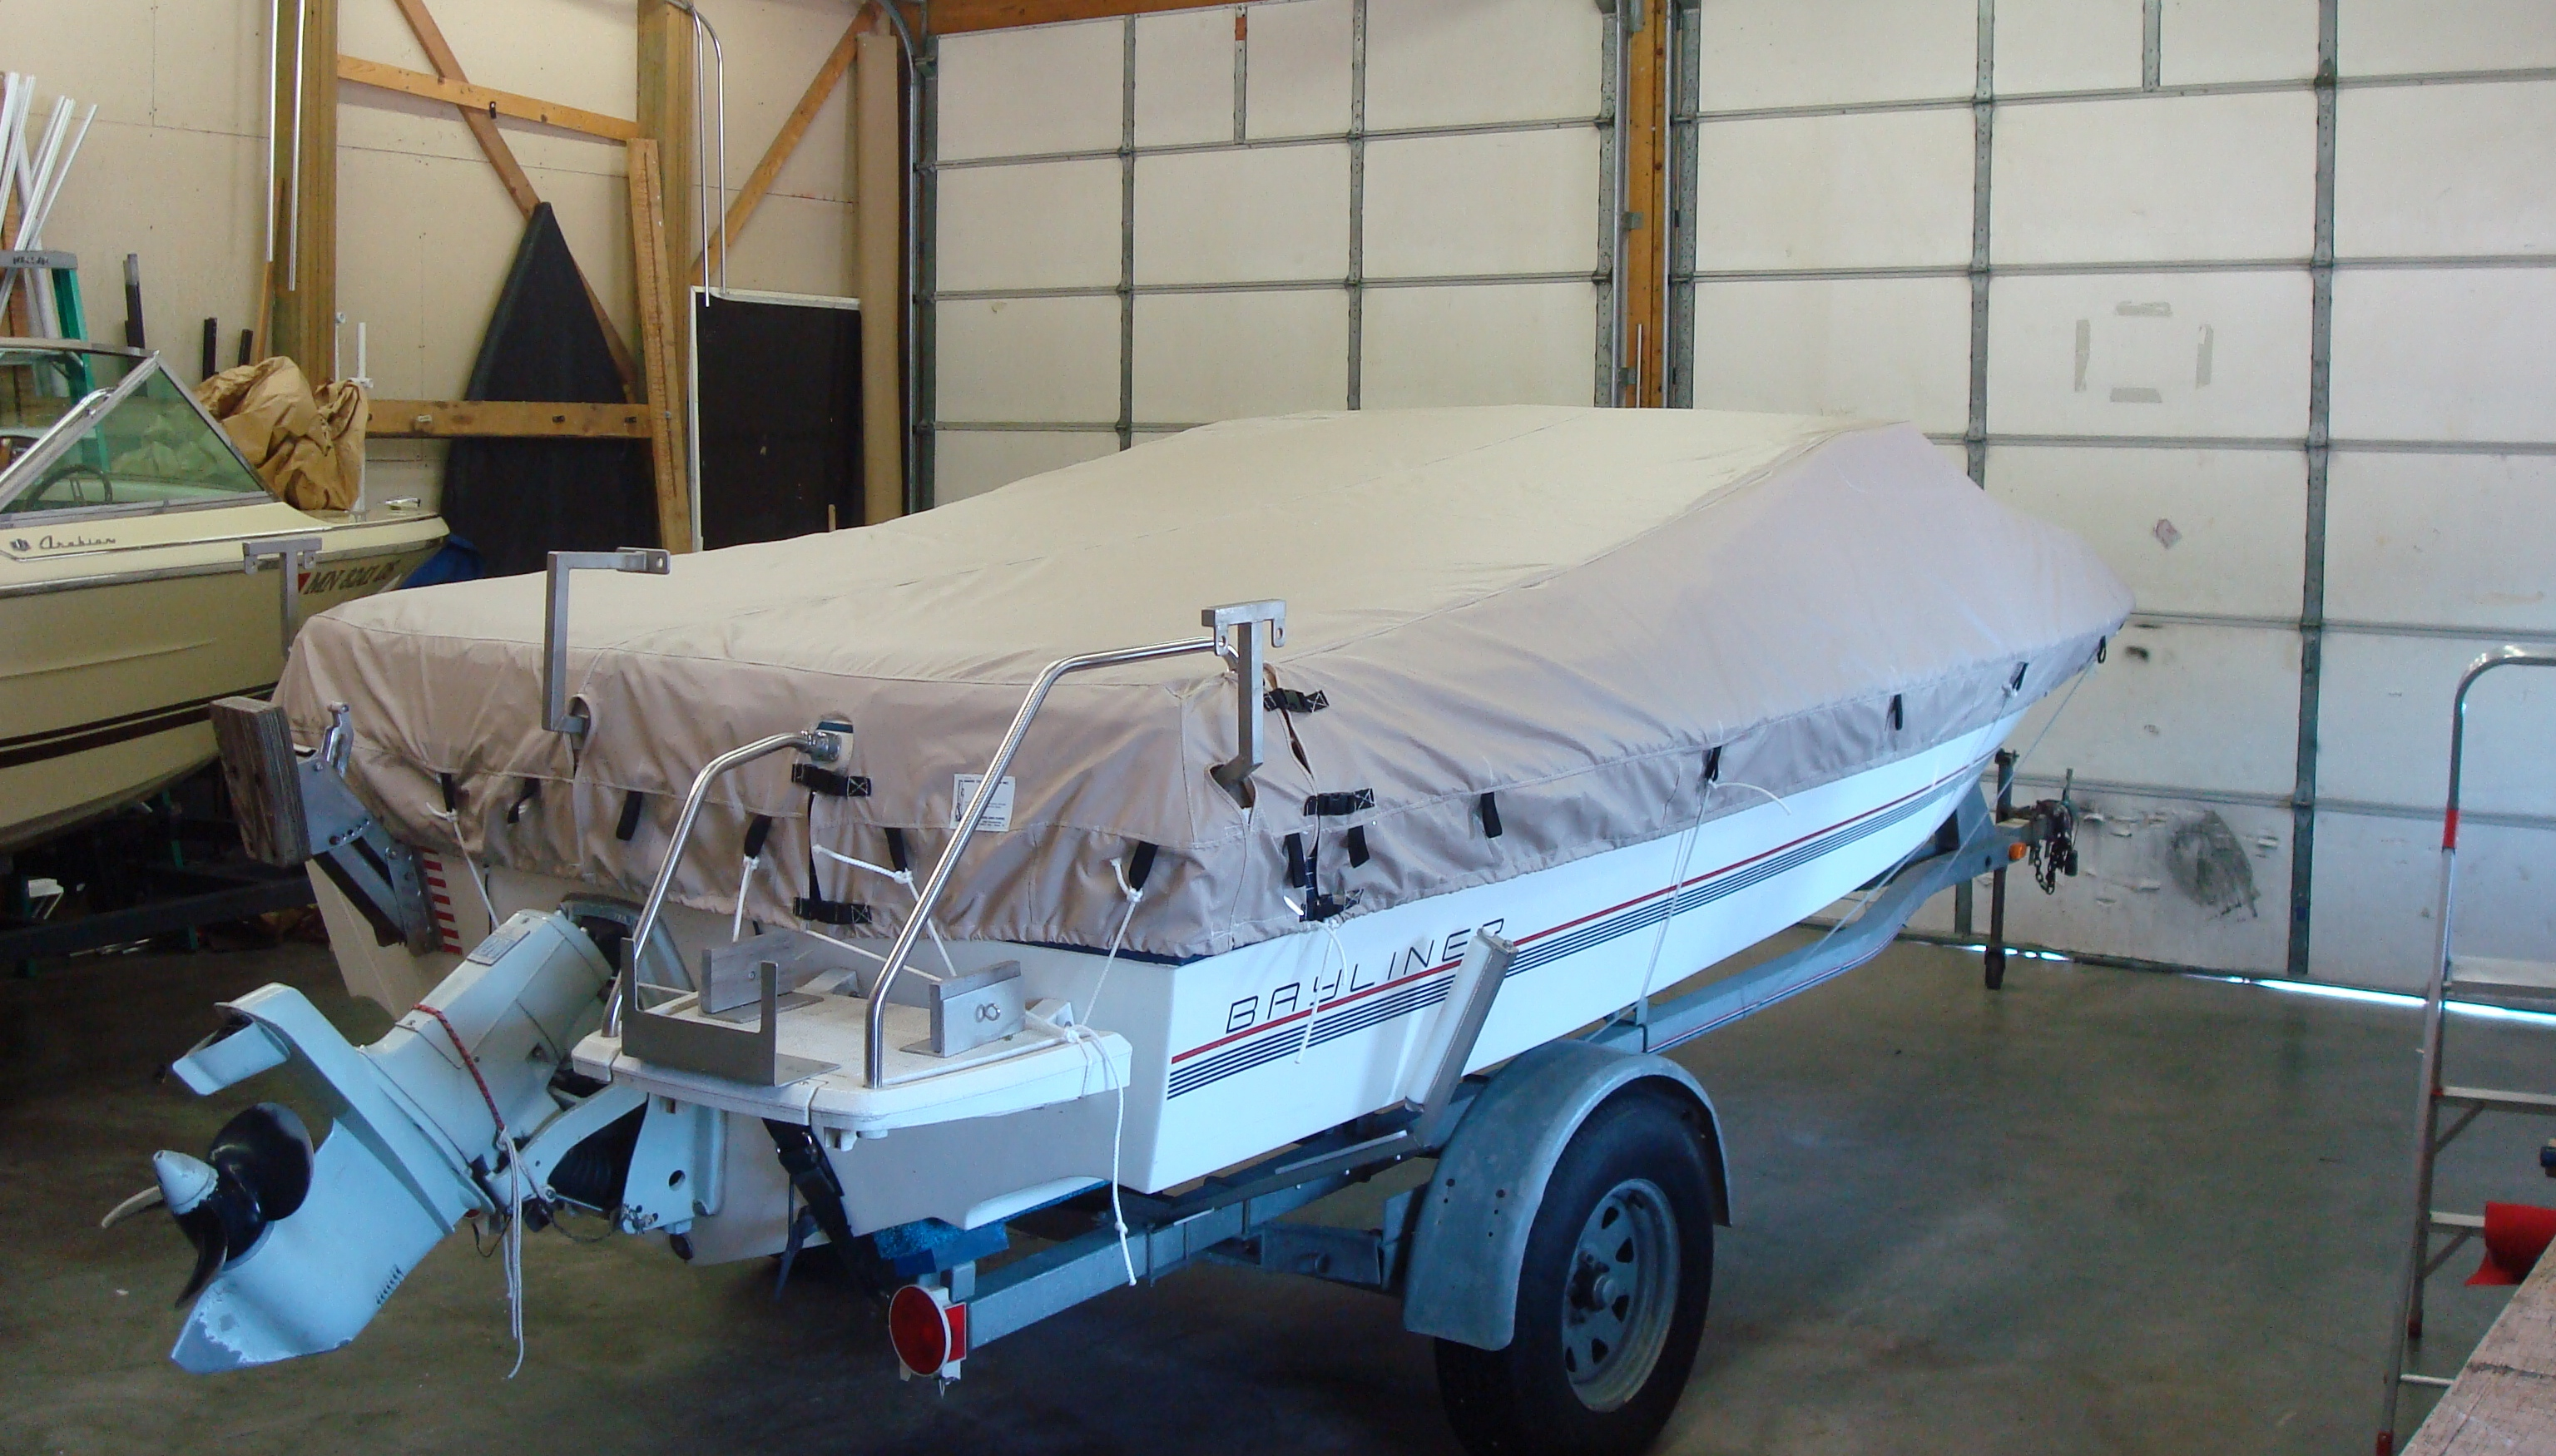 Custom Sunbrella Boat Cover: Bayliner tie down mooring cover with special velcro cutouts for ladder and hardware mounts